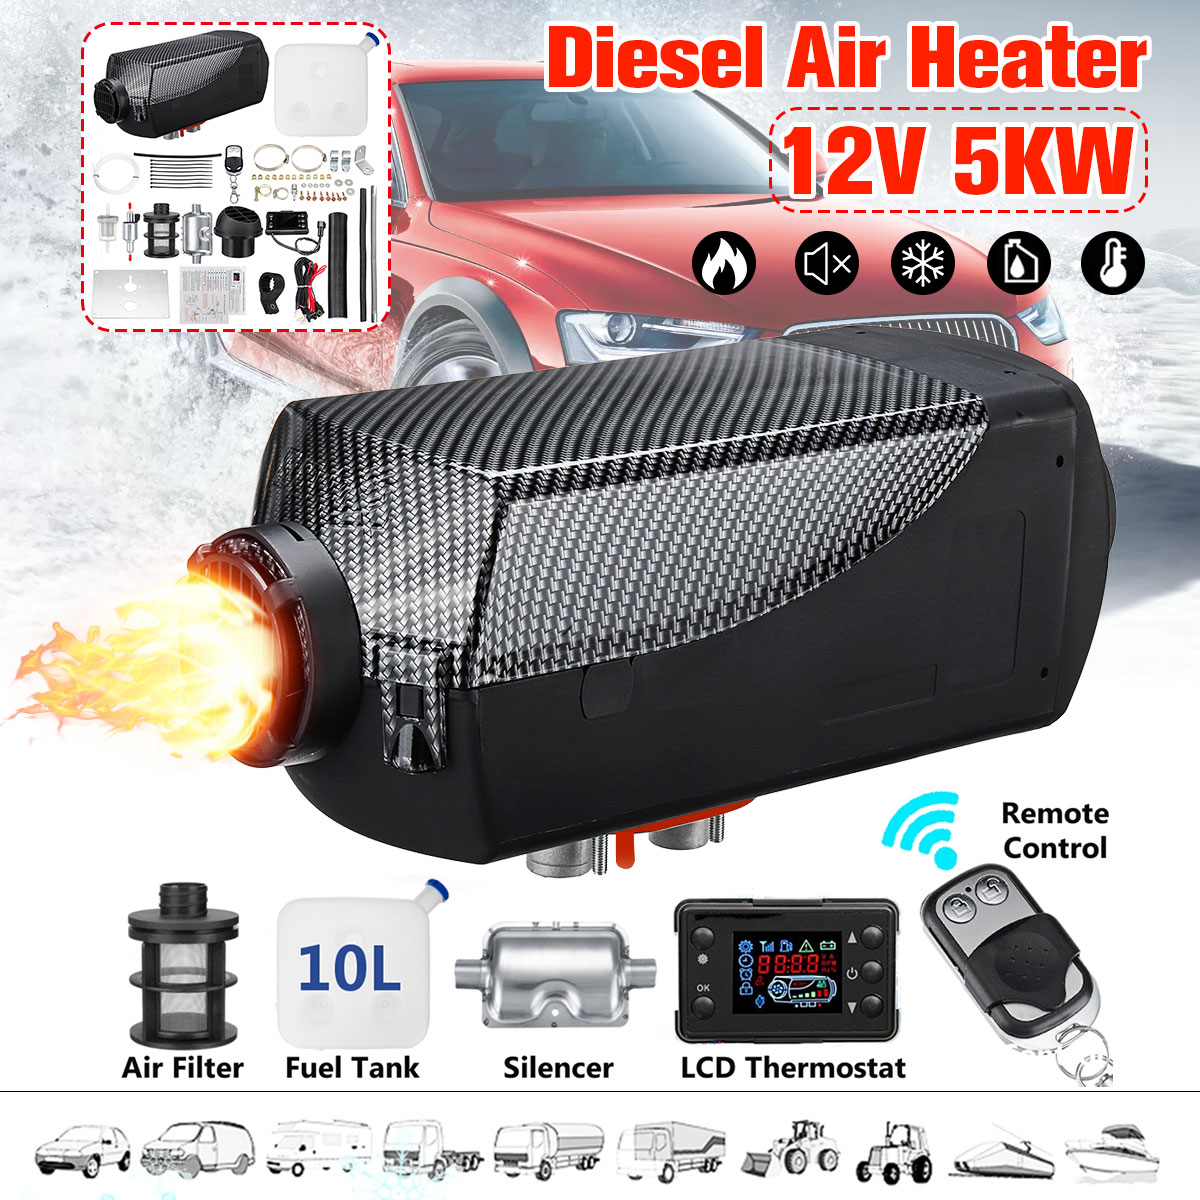 Winter Car Heater 5KW 12V Air Autonomous Diesel Heater Parking Heater With Remote Control LCD Monitor for Trailer Trucks Boat Winter Car Heater 5KW 12V Air Autonomous Diesel Heater Parking Heater With Remote Control LCD Monitor for Trailer Trucks Boat